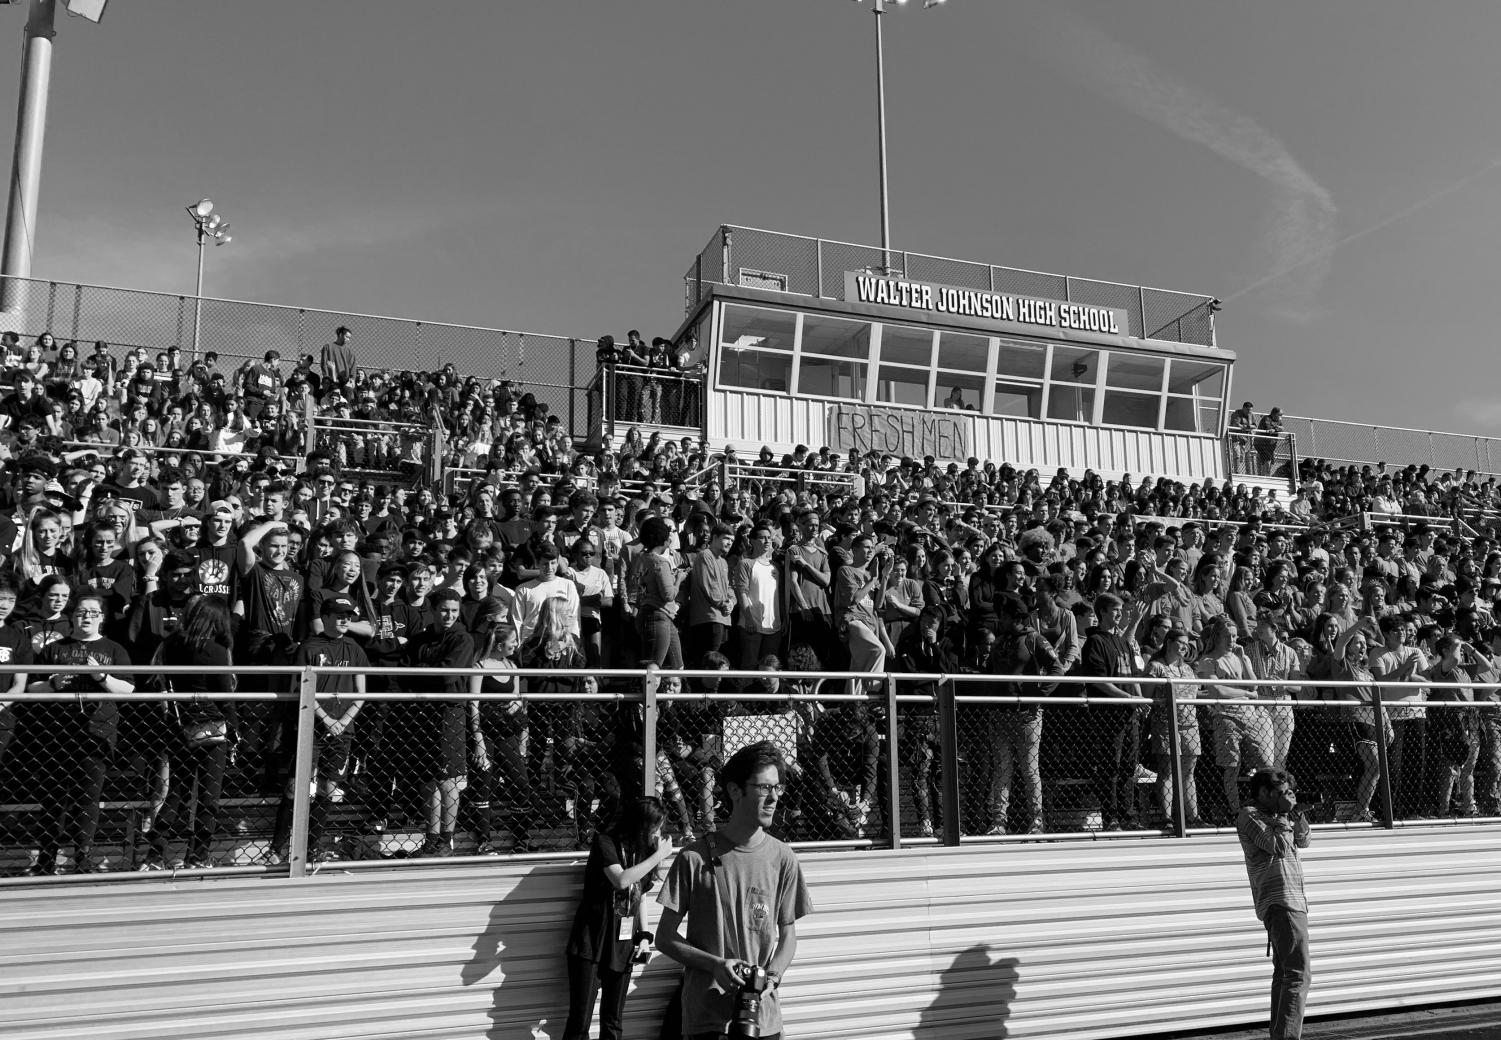 Held in the outdoor stadium this year, the fall pep rally brought together students of all grades, many dressed in their designated class color. A minority of students refrained from participating in the spirit, causing them to appear as outcasts to some.